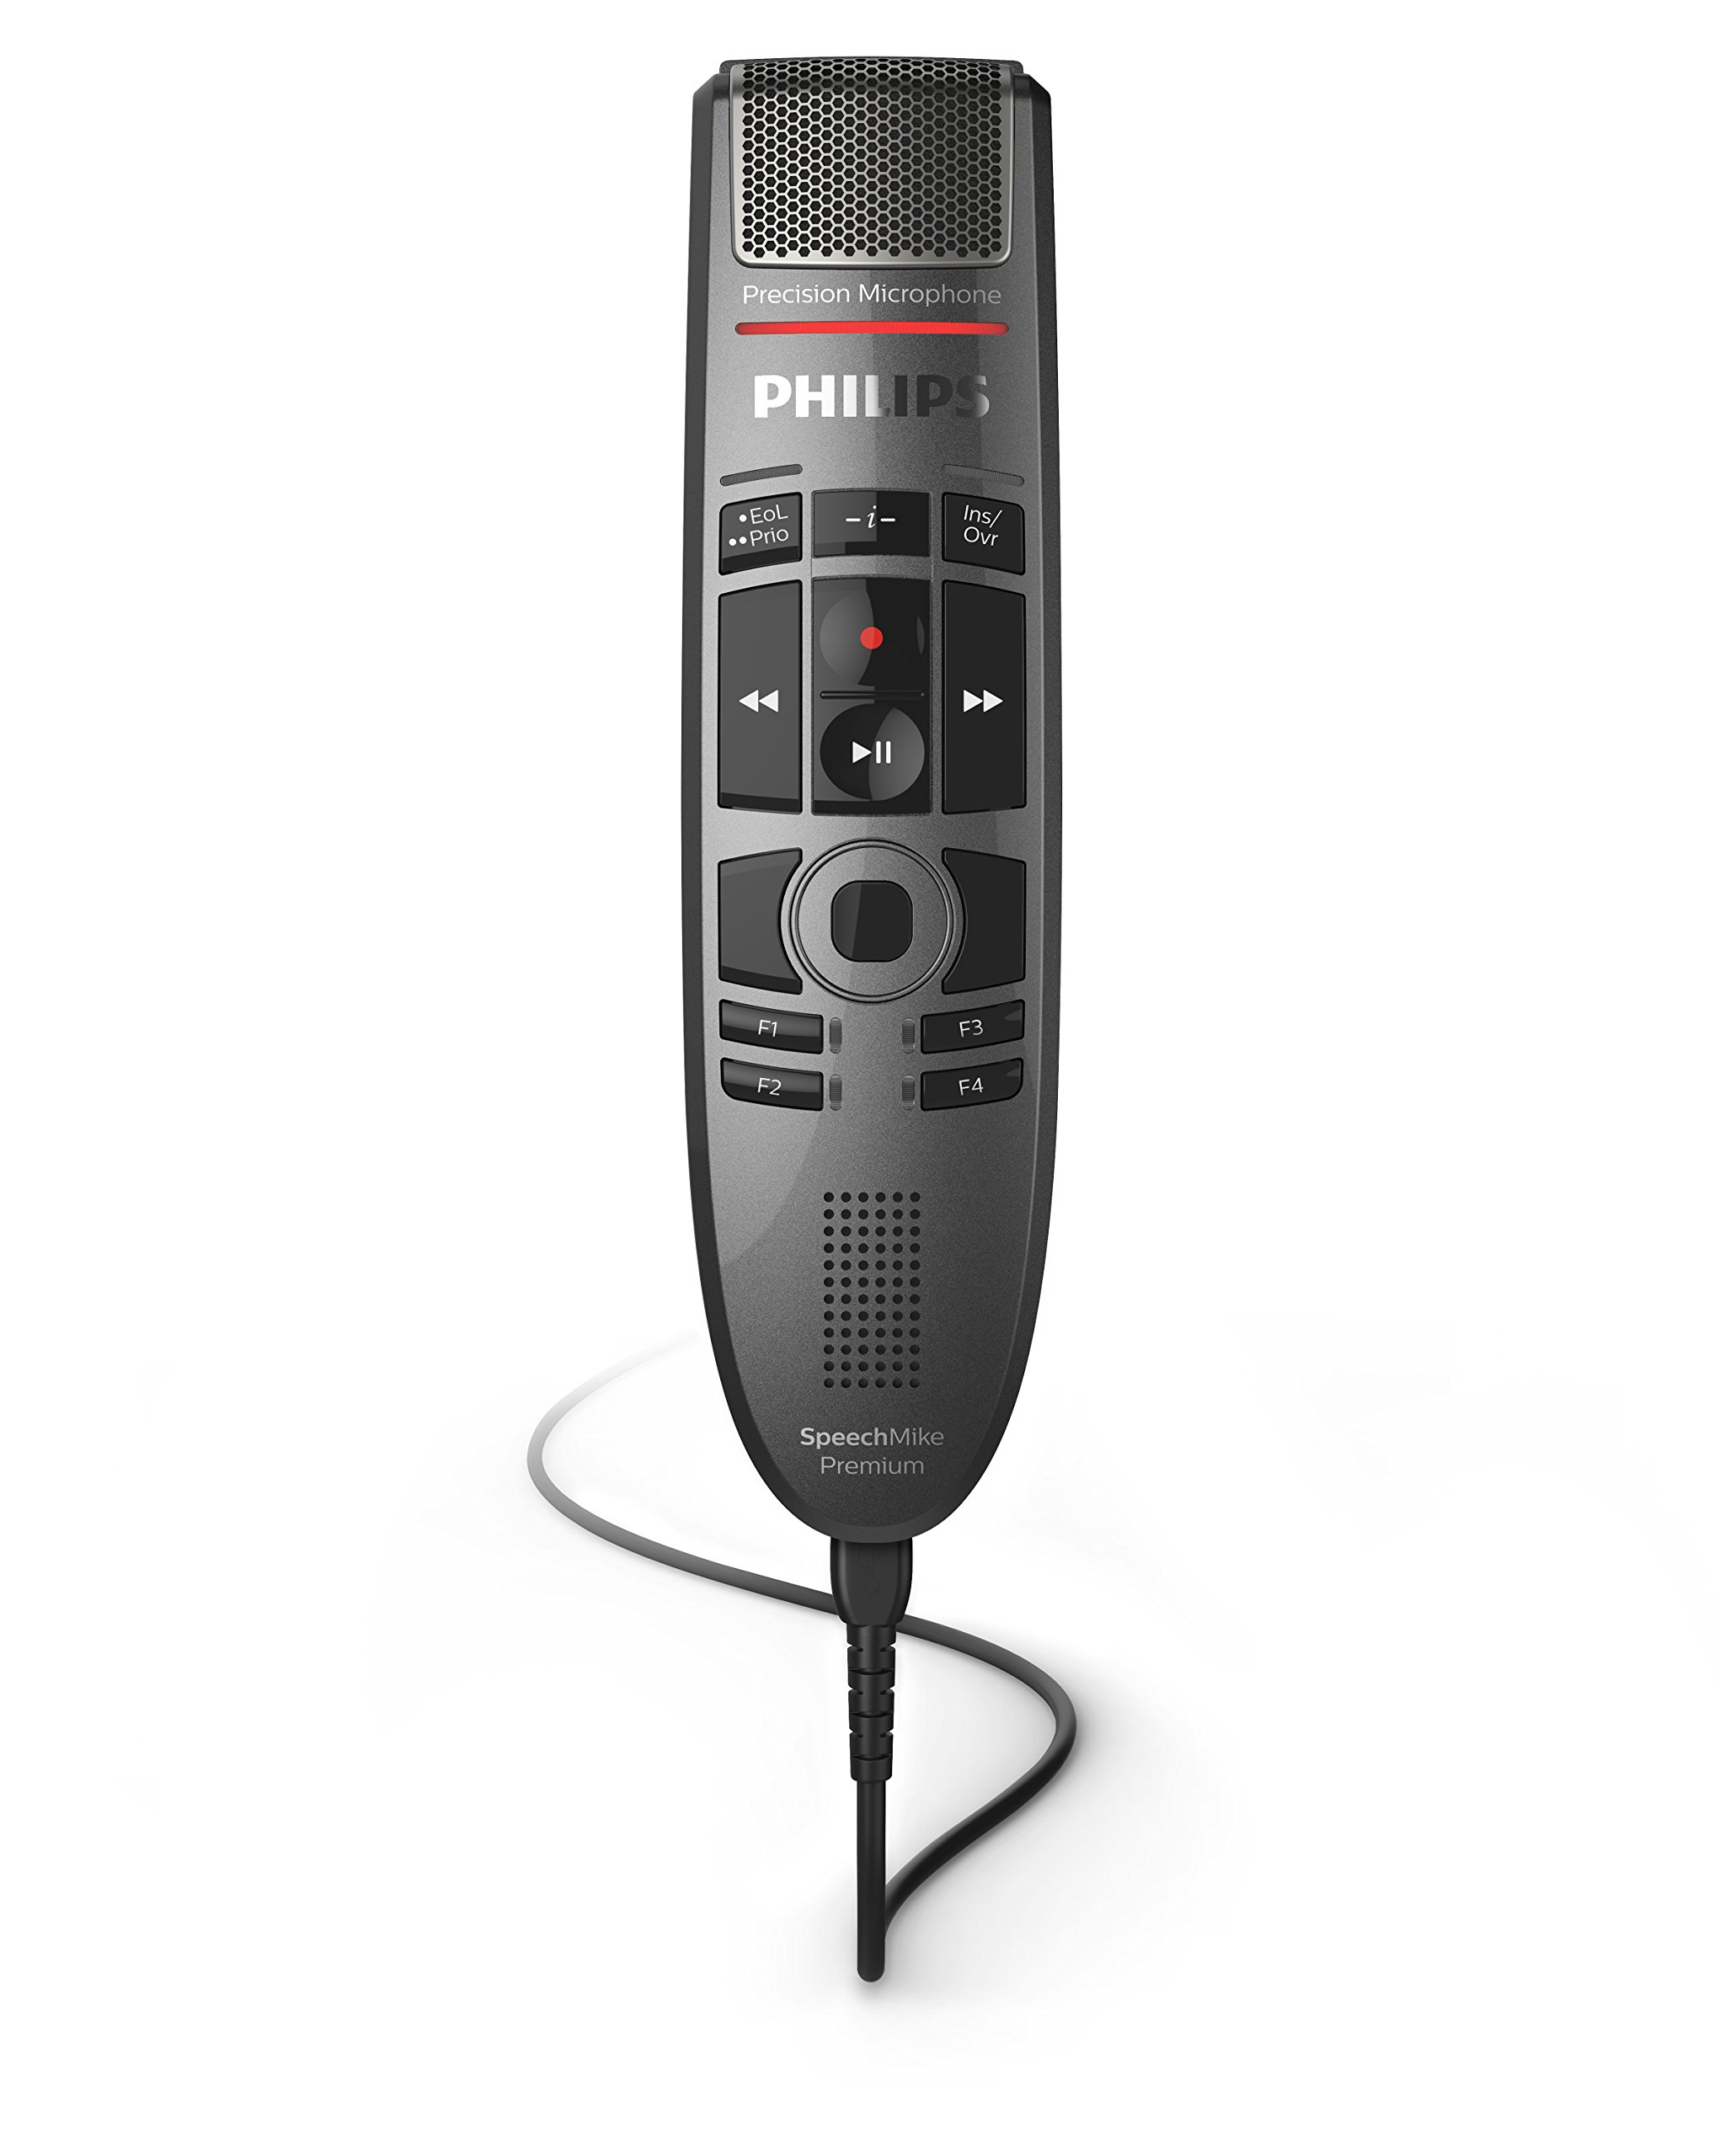 Philips SMP3700 SpeechMike Premium Touch Precision USB Microphone - Push Button Operation